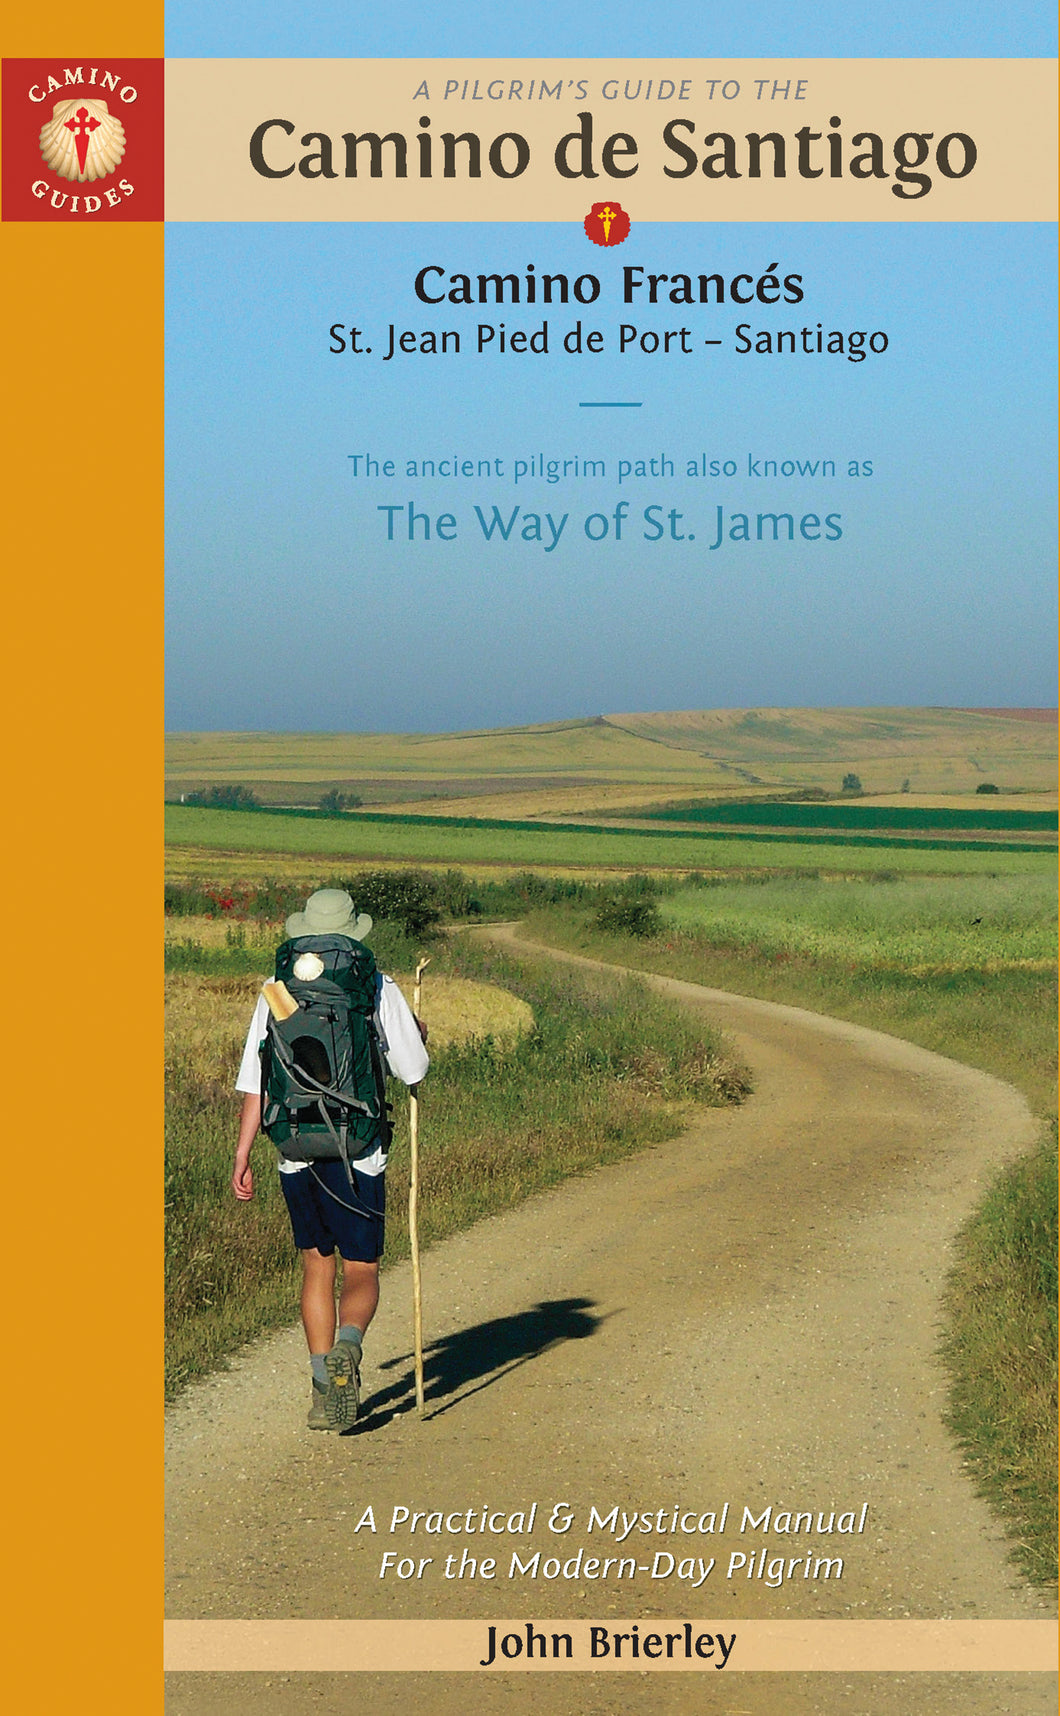 A Pilgrim's Guide to the Camino de Santiago: St. Jean Pied de Port to Santiago de Compostela – by John Brierley